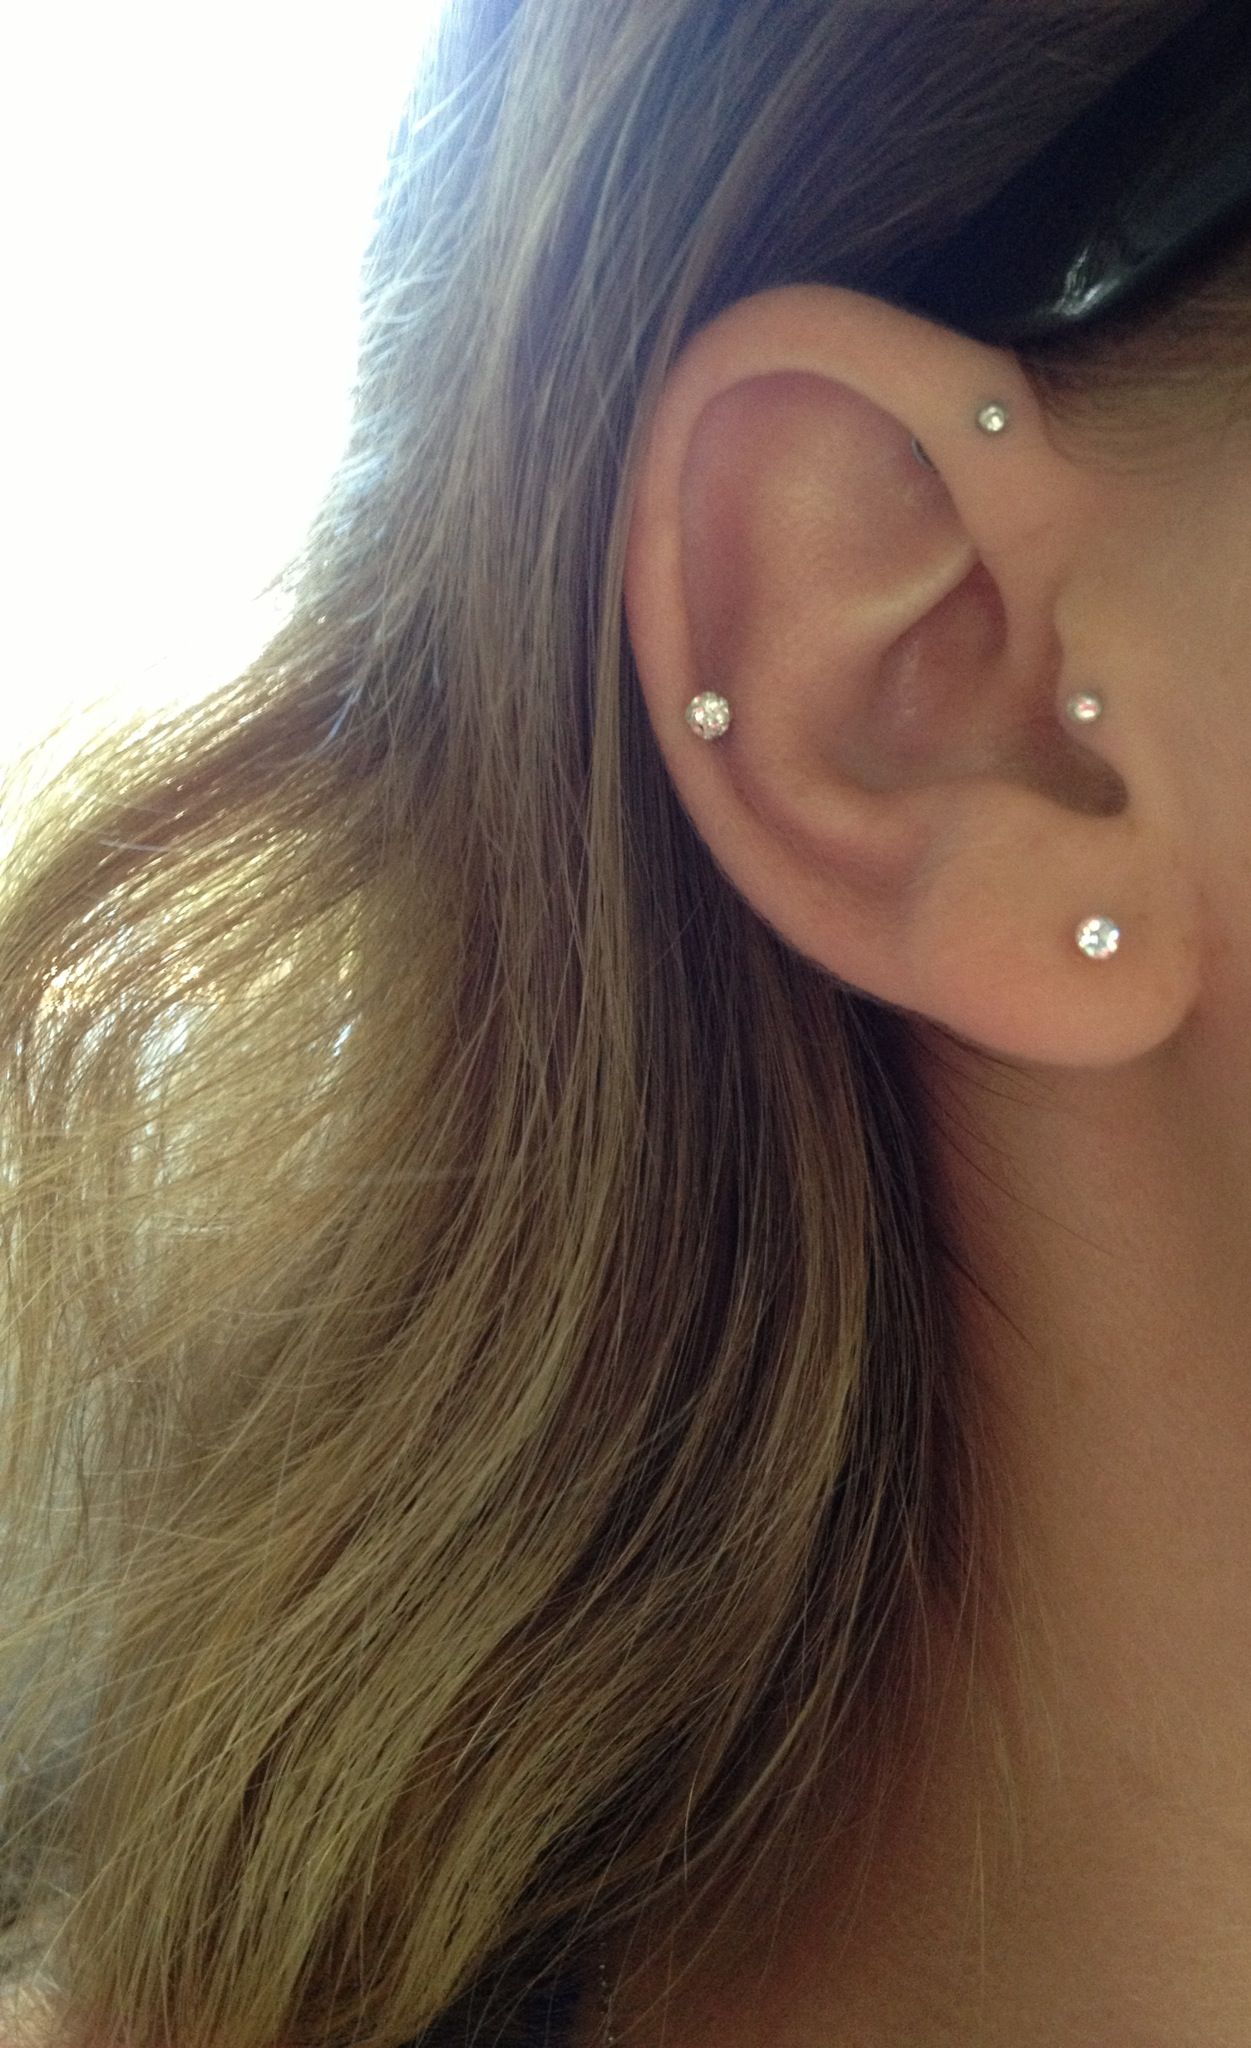 Nose piercing without earring   unique and beautiful ear piercing ideas from minimalist studs to